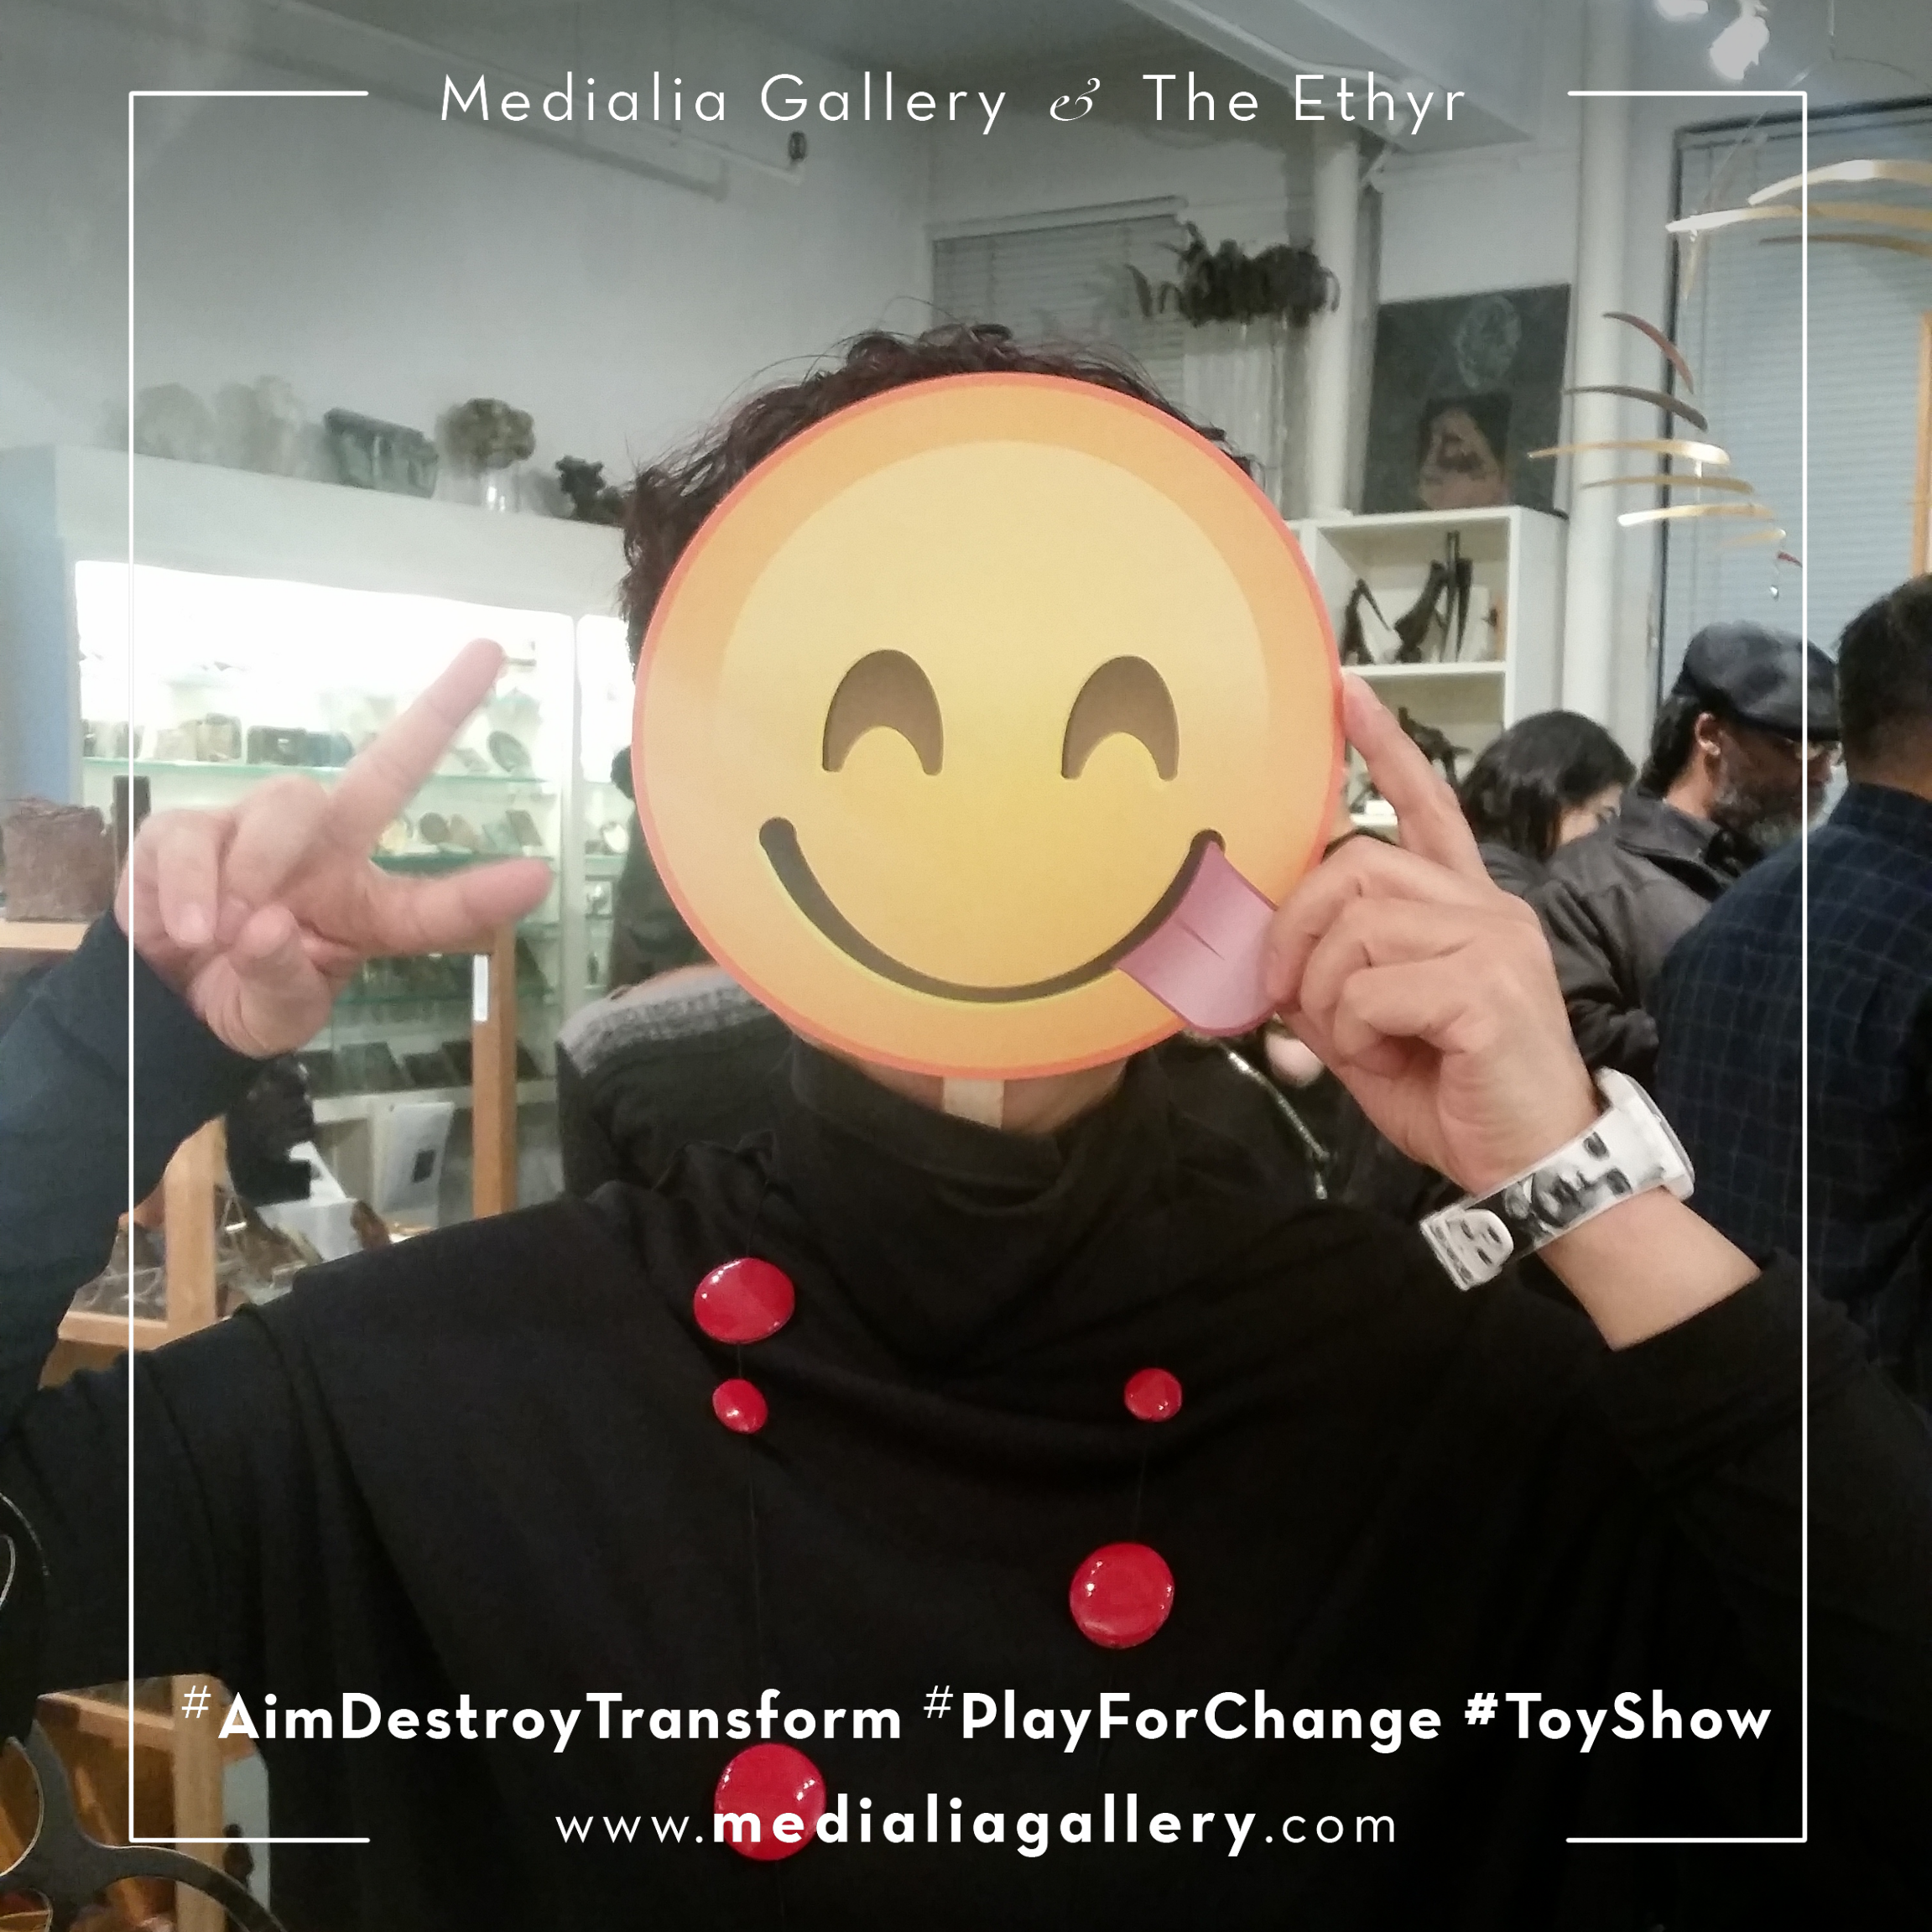 MedialiaGallery_The_Ethyr_AimDestroyTransform_Toy_Show_announcement_Guests_Photo_Props_November_2017.jpg.png